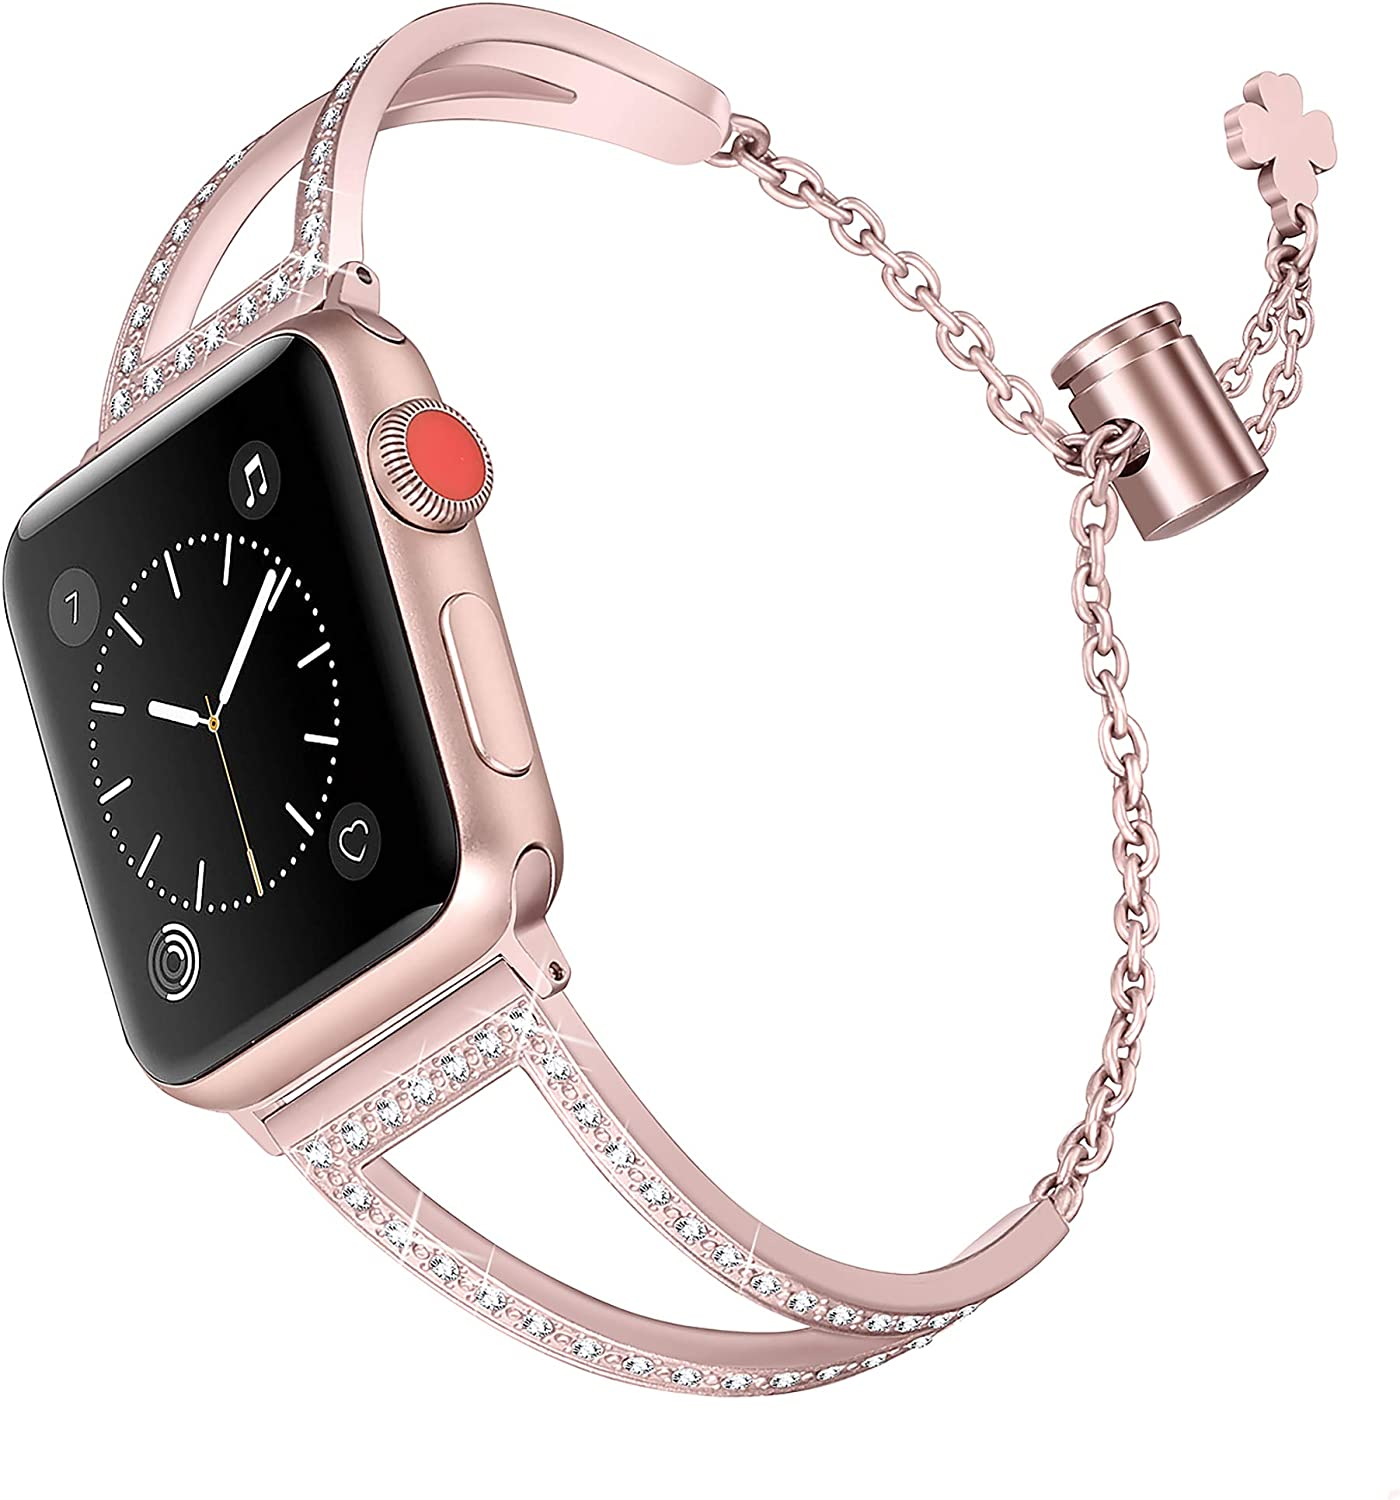 Secbolt Bling Bands Compatible with Apple Watch Band 42mm 44mm iWatch SE Series 6/5/4/3/2/1, Women Dressy Metal Jewelry Bracelet Stainless Steel, Rose Gold